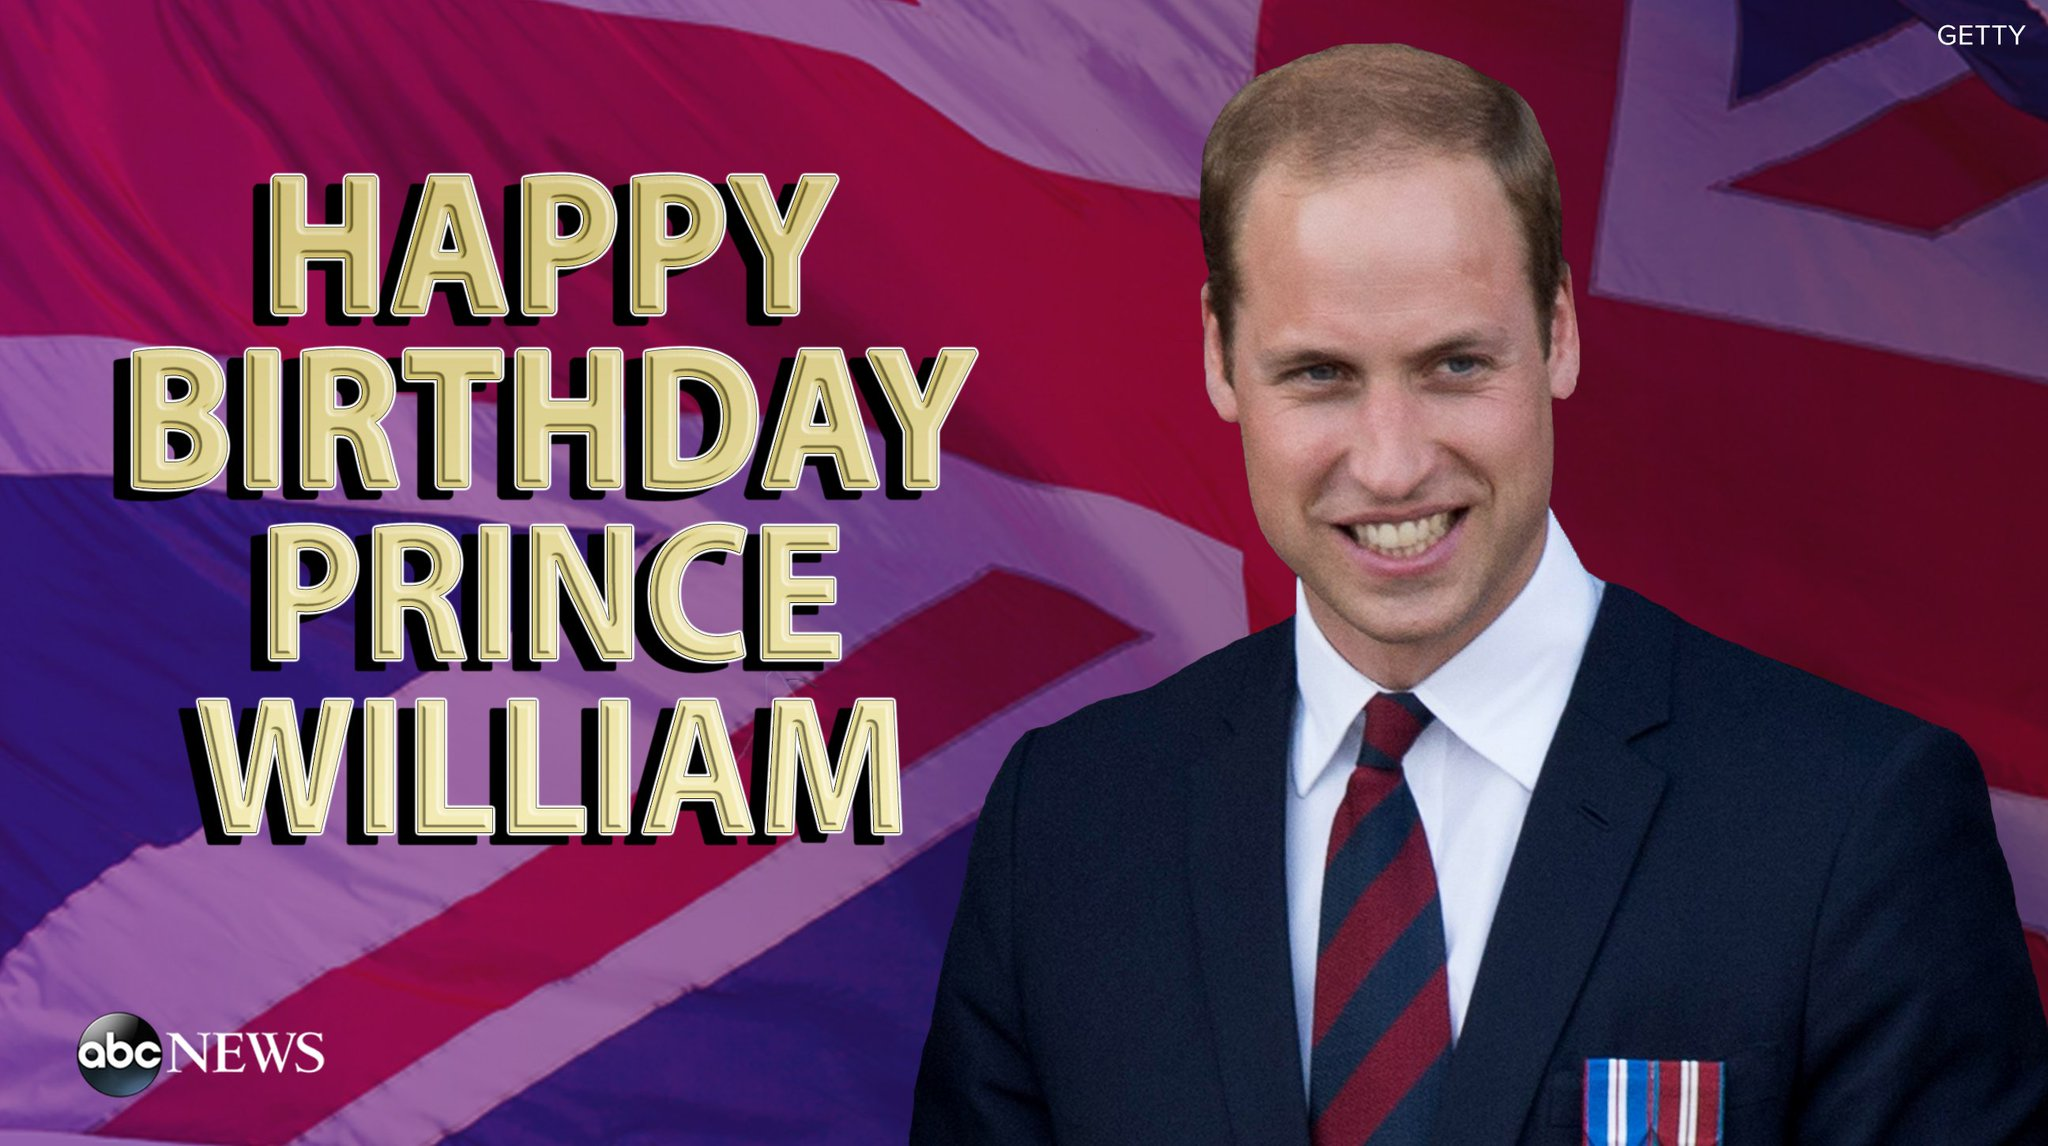 Happy 35th birthday Prince William! See his life in photos: